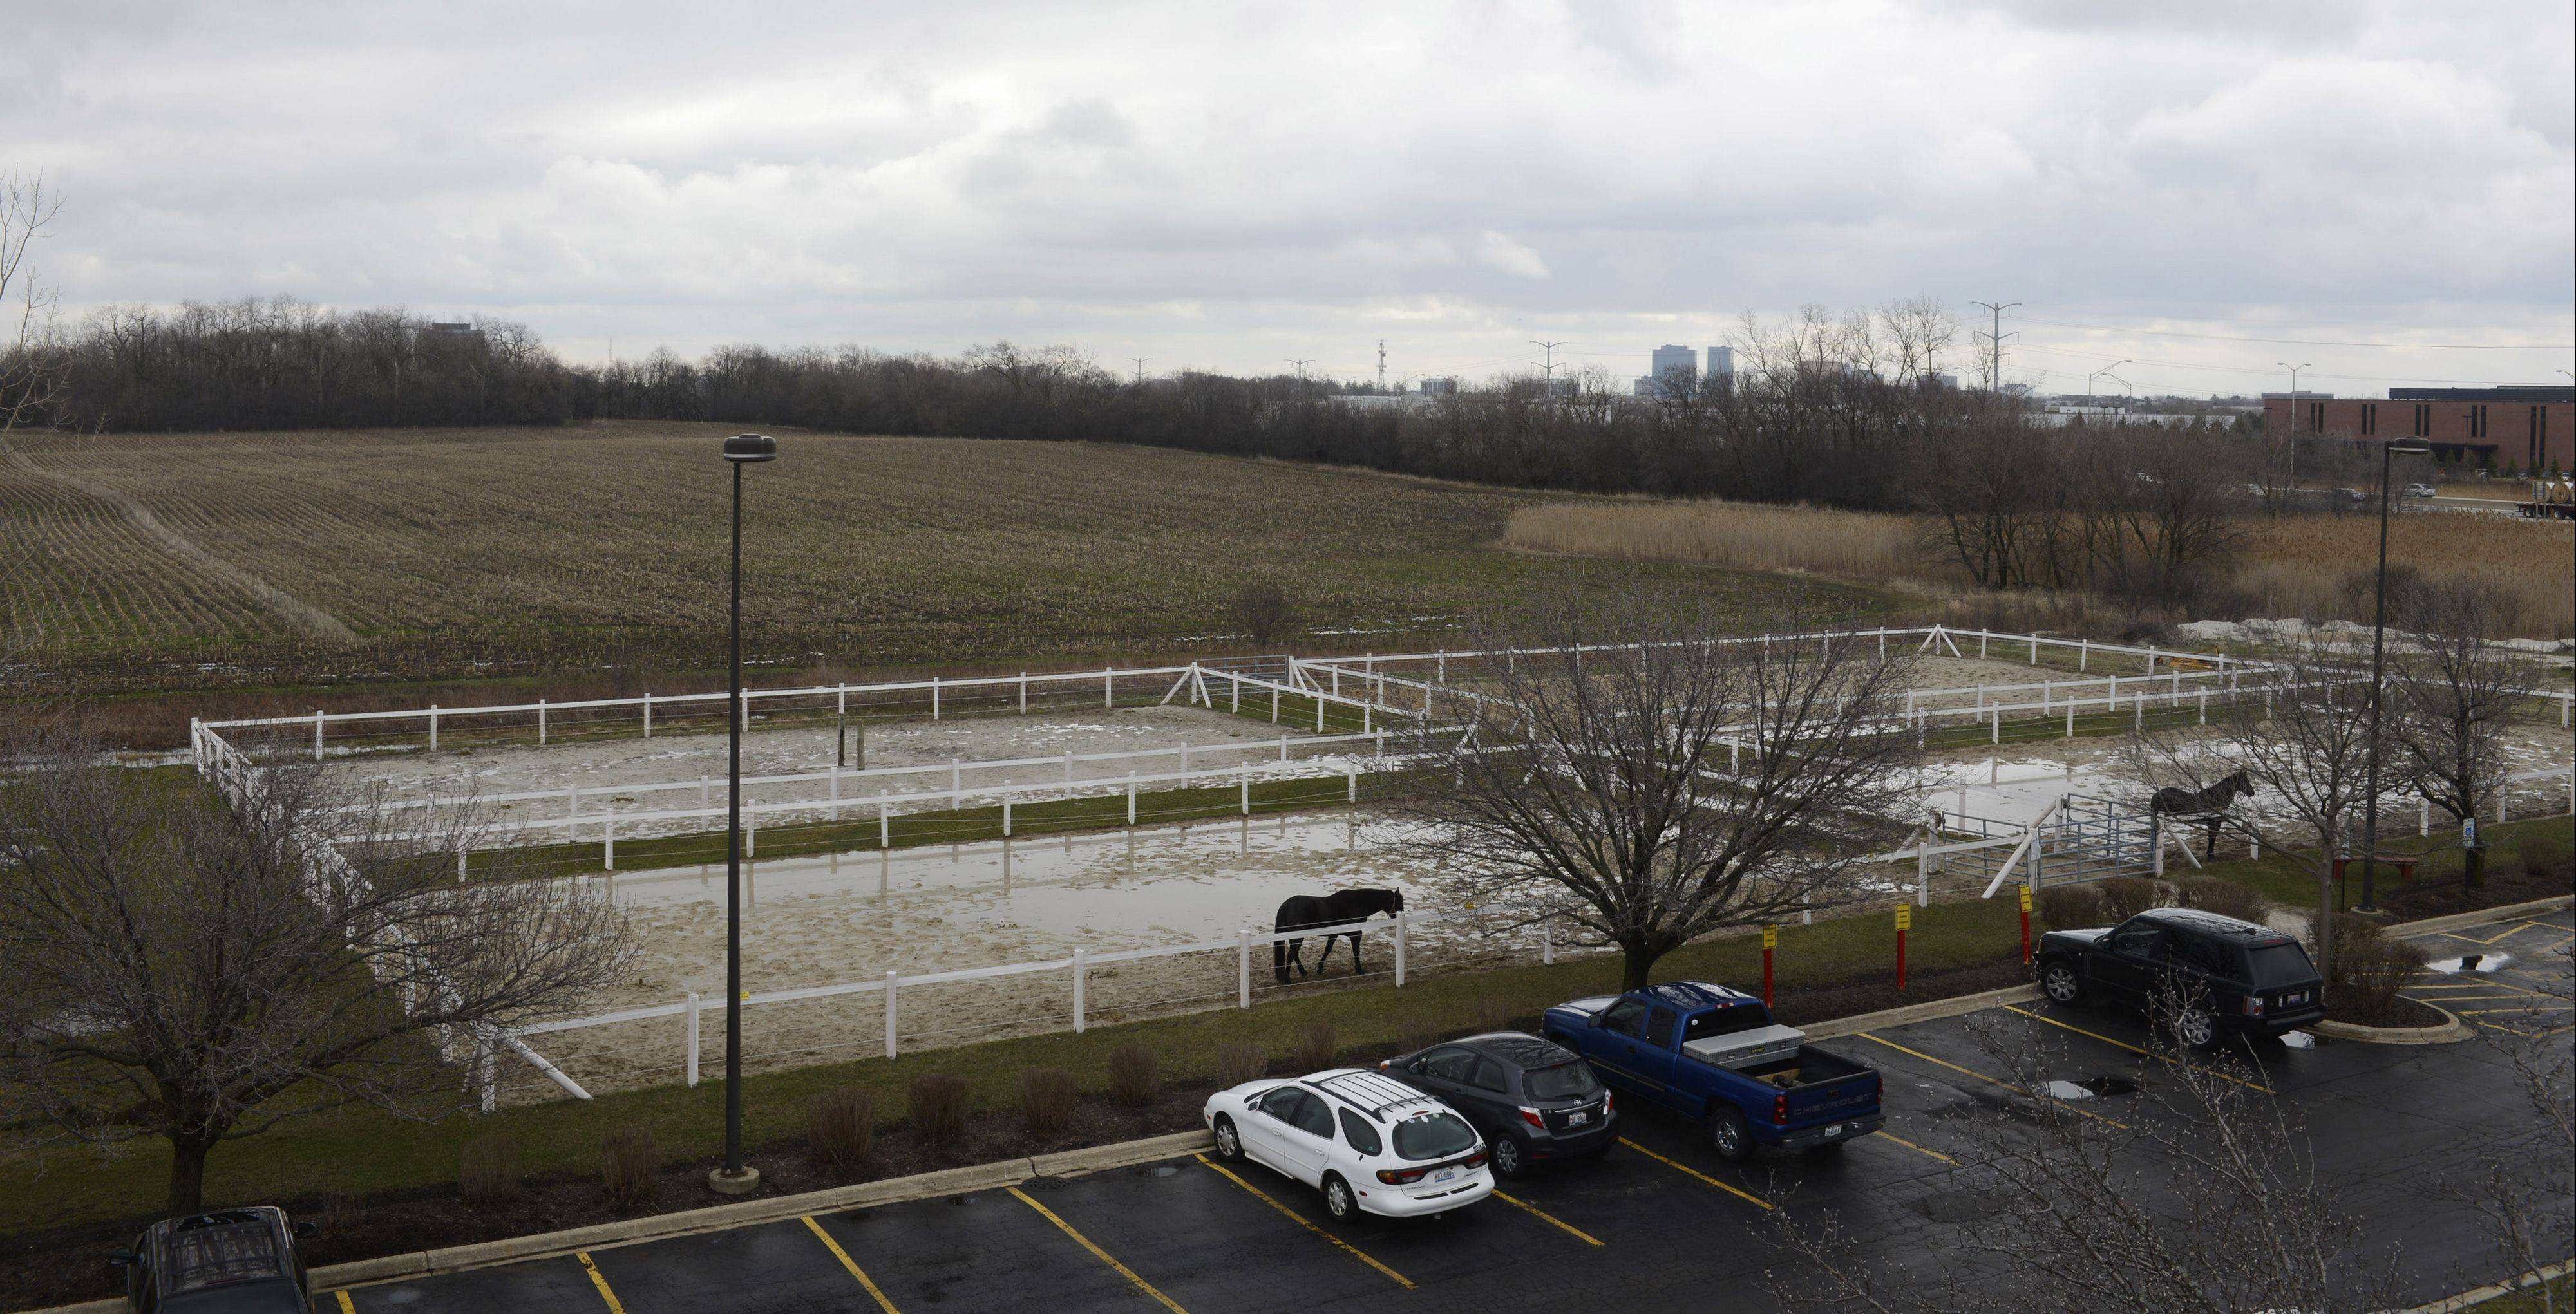 Schaumburg officials Tuesday will consider a resolution to build a connecting road and annex 80 acres north and east of Medieval Times for Japanese firm Sunstar Americas Inc. to build a new plant. The property is owned by the Archdiocese of Chicago.